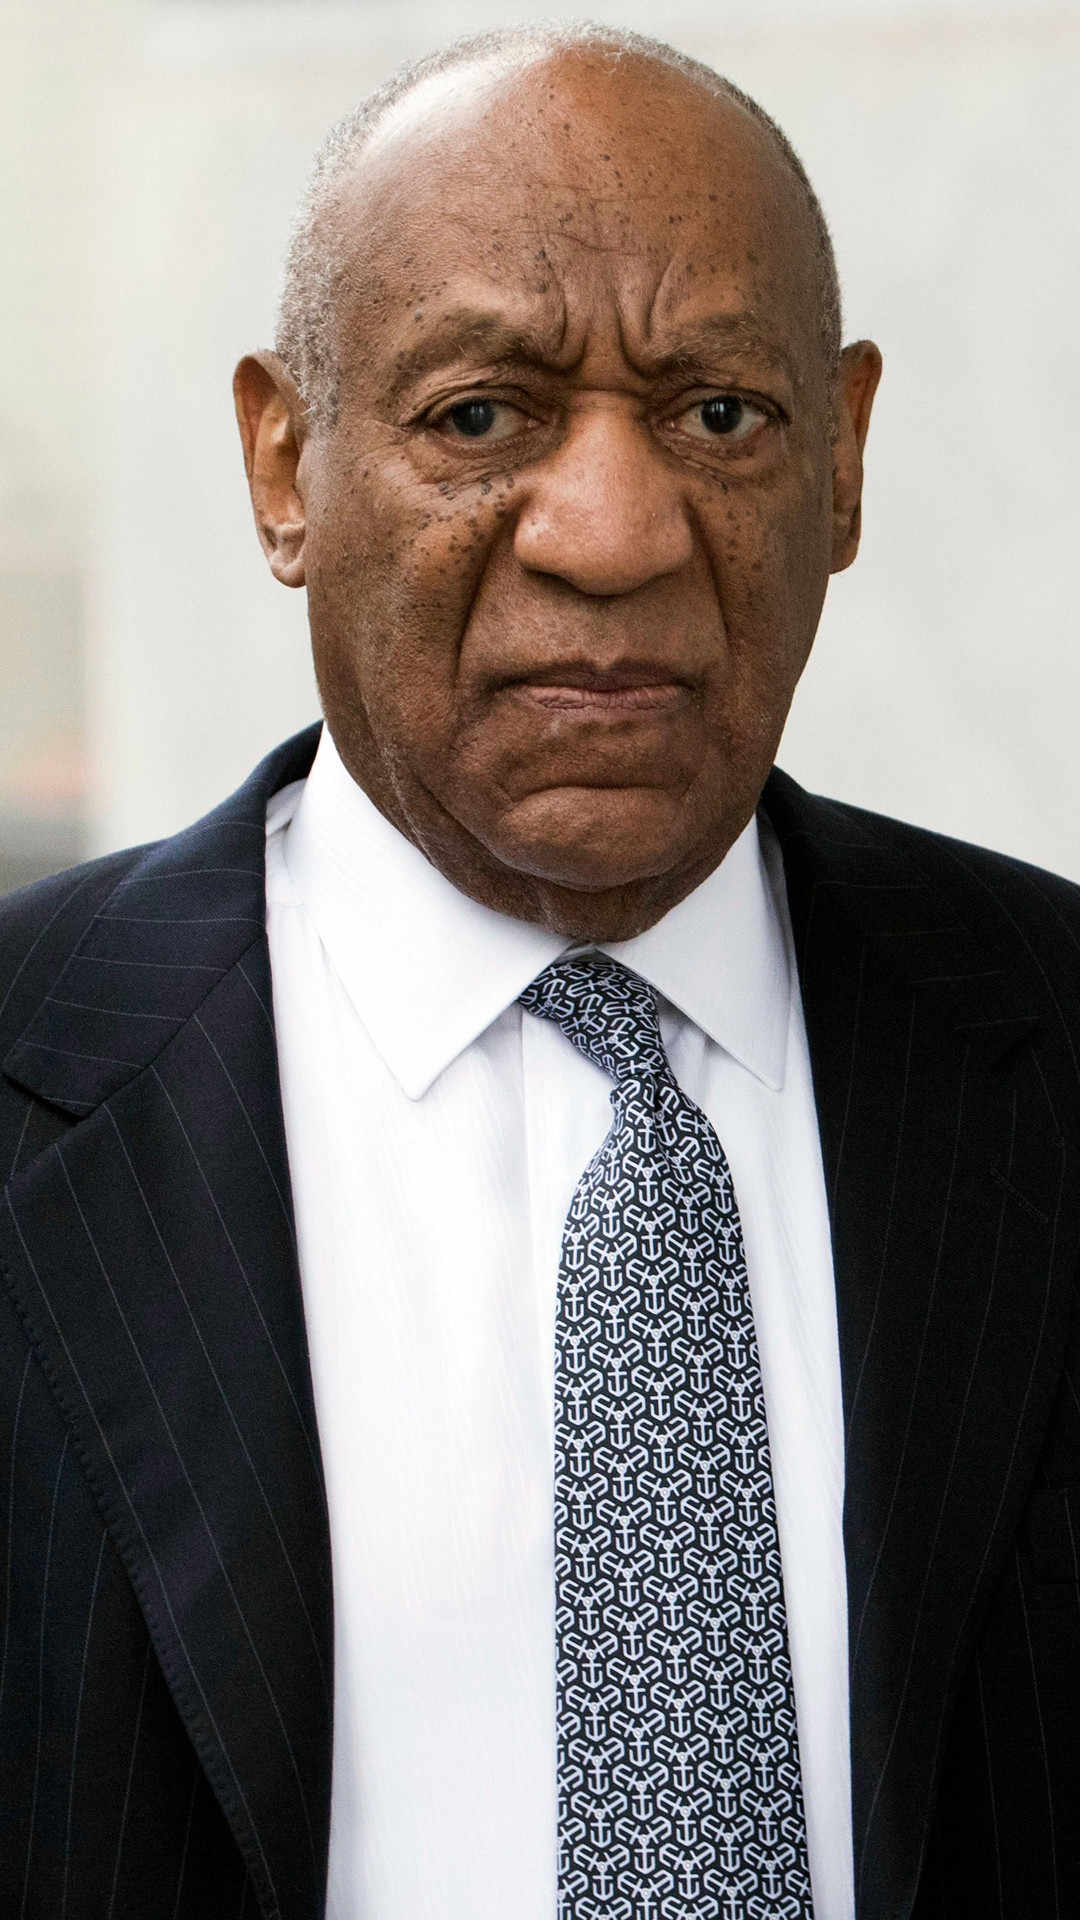 Finally there is verdict on the case of Bill Cosby : He was found guilty in three cases of aggravated assault.  The decision was made public on Thursday, April 26. For each case, Cosby would face a maximum of 10 years and a fine of 25 thousand dollars.  In 2004, Cosby was tried on charges of assault against Andrea Constand. He has denied any wrongdoing. The first trial on this case ended in a null judgment in 2017, after a jury failed to reach a verdict. However, in his new trial, the judge has allowed other accusers to testify against him as witnesses.  We will share other details later.